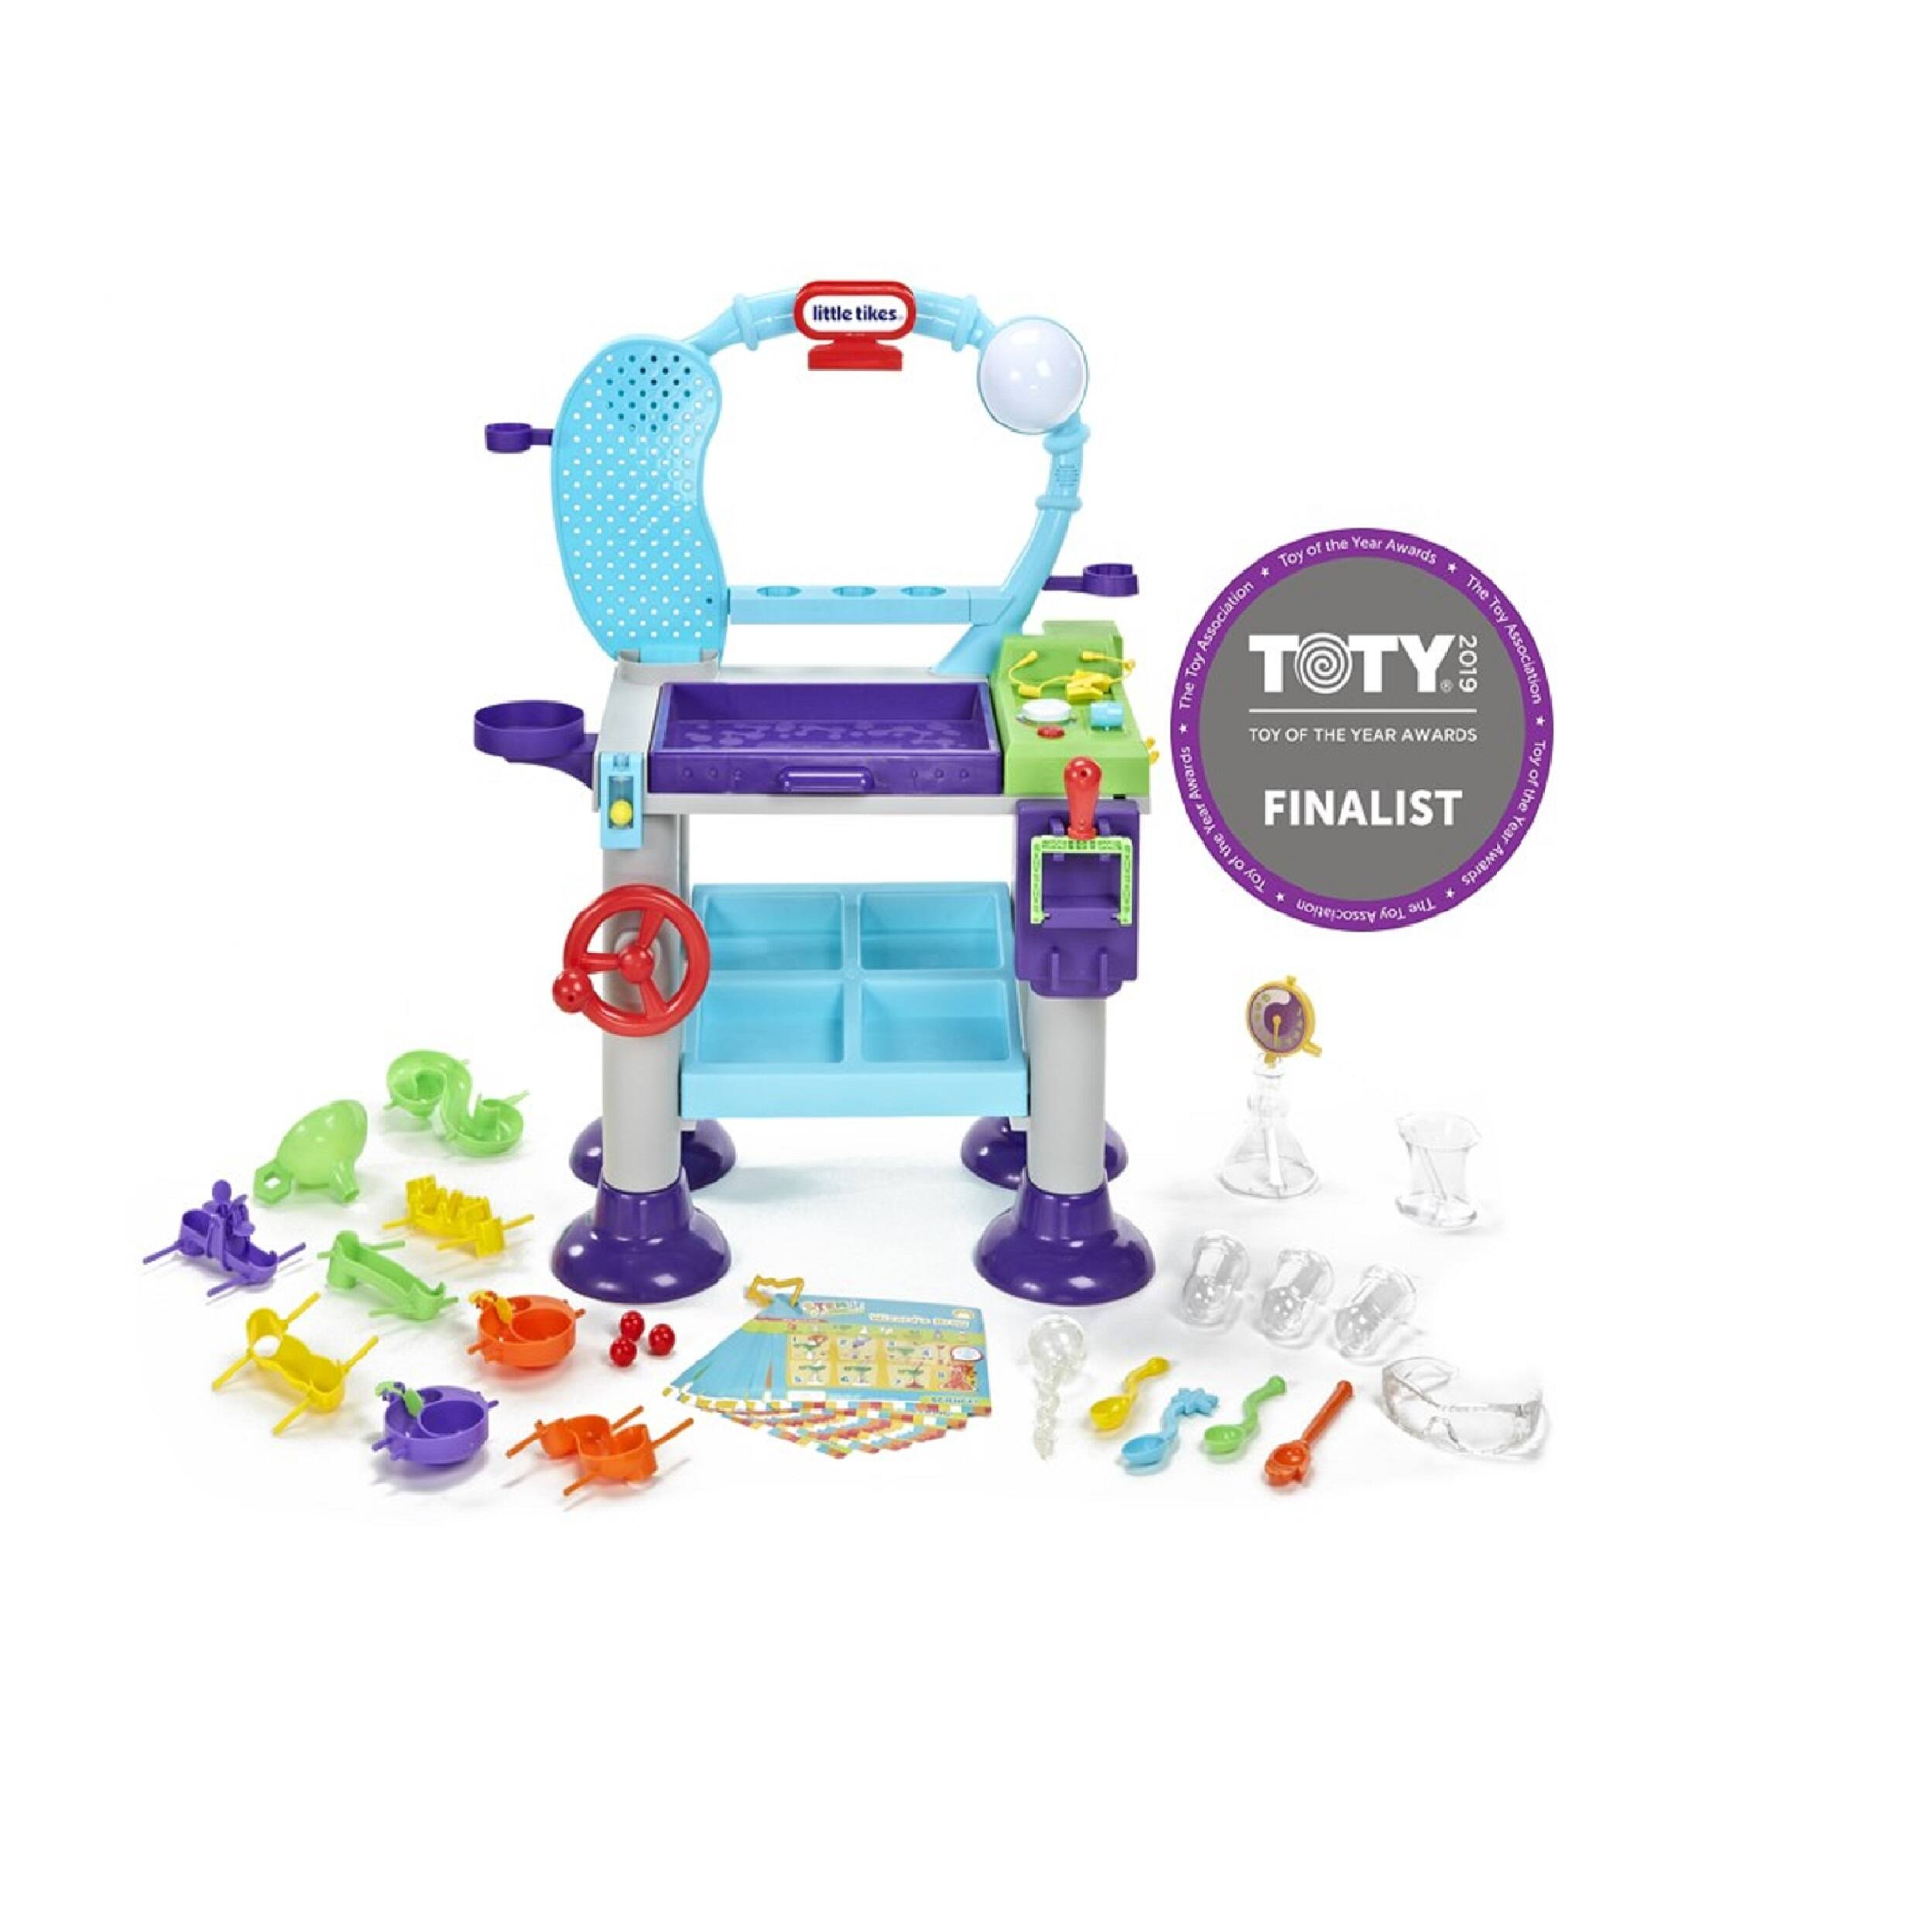 Walmart in store: Little Tikes STEM Jr. Wonder Lab Toy with Experiments for Kids 74% off for $30